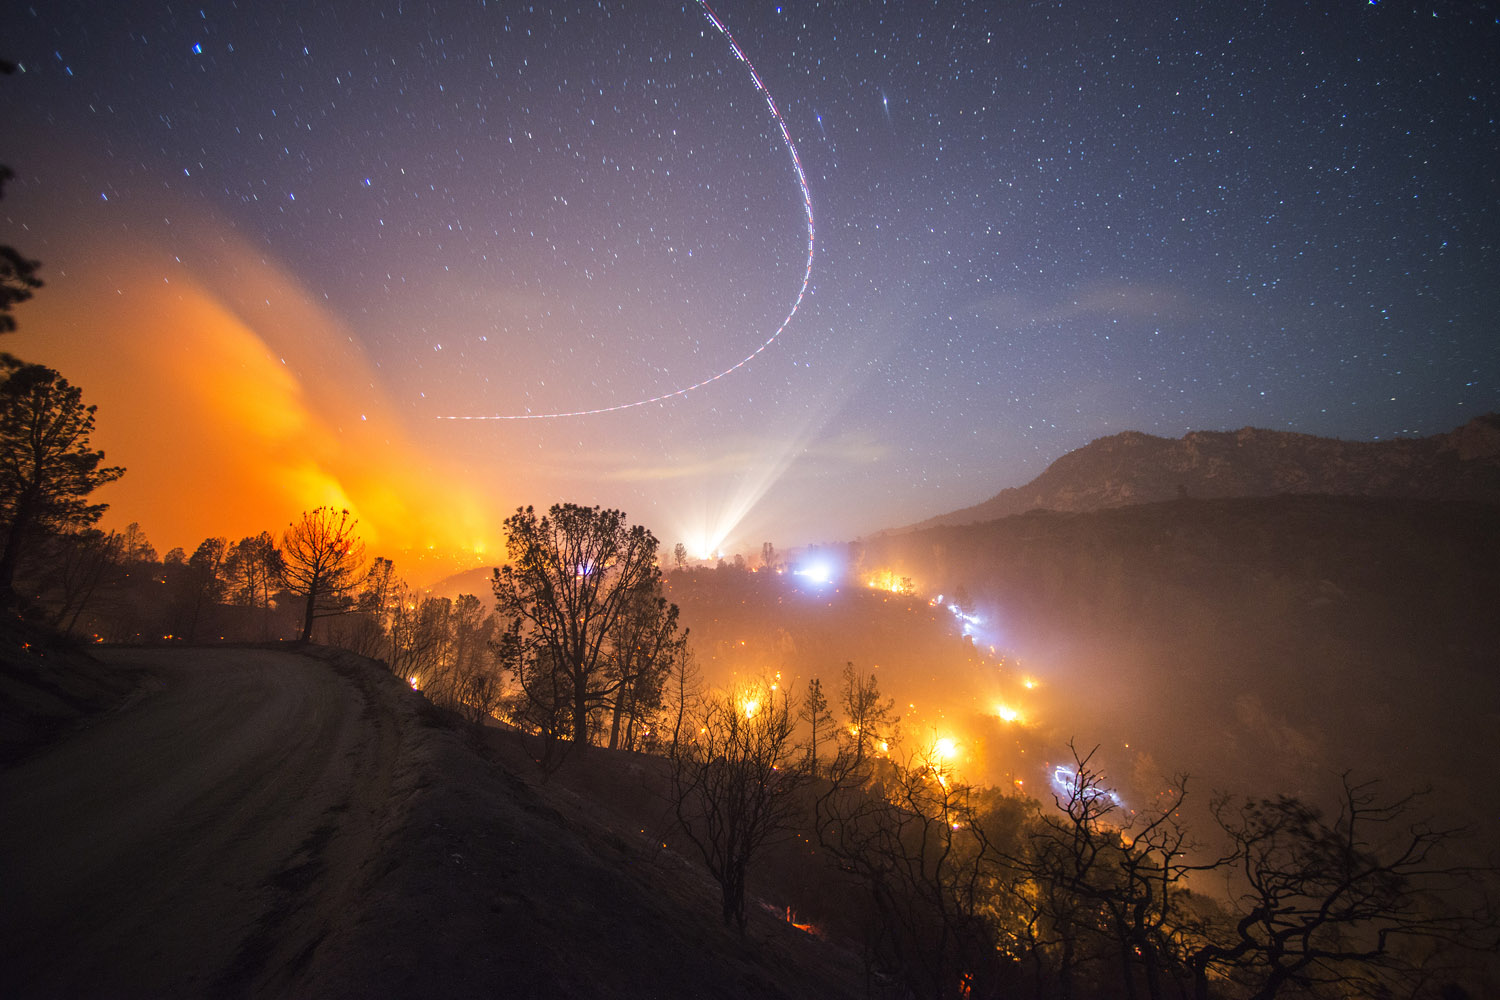 The Shirley Fire burns at night off of Old State Rd near Lake Isabella  while a helicopter circles overhead and crews work on a slopover, Calif., June 15, 2014.